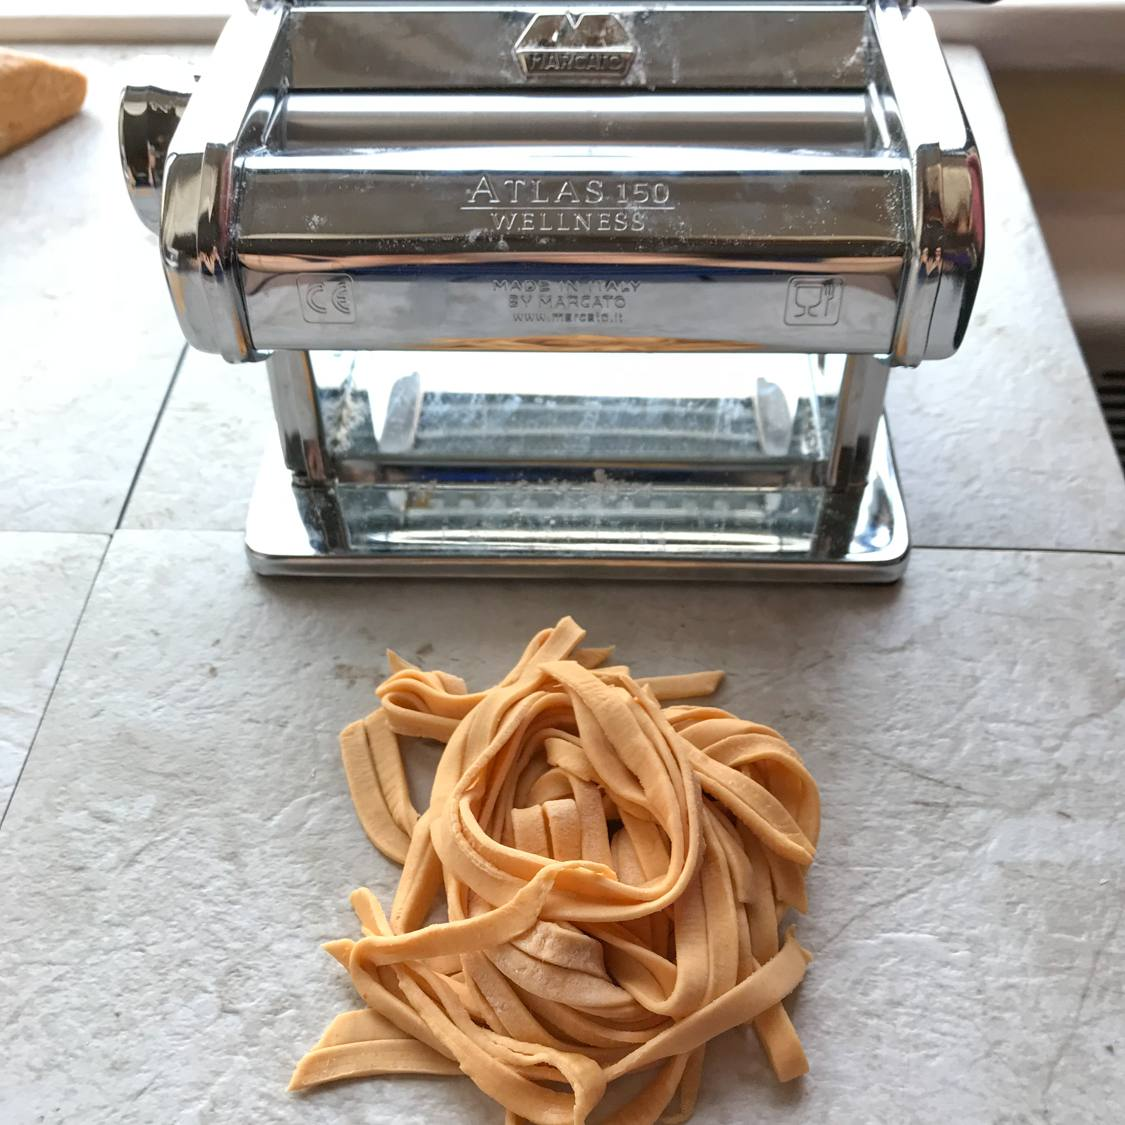 The 7 Best Pasta Makers of 2019 Best Price Kitchenaid Pasta Attachment on kitchenaid attachment replacement parts, kitchenaid mixer attachments, kitchenaid noodle attachment, kitchenaid attachments on sale, kitchenaid stand attachments, kitchenaid accessories prices, kitchenaid spaghetti cutter, kitchenaid blender prices,